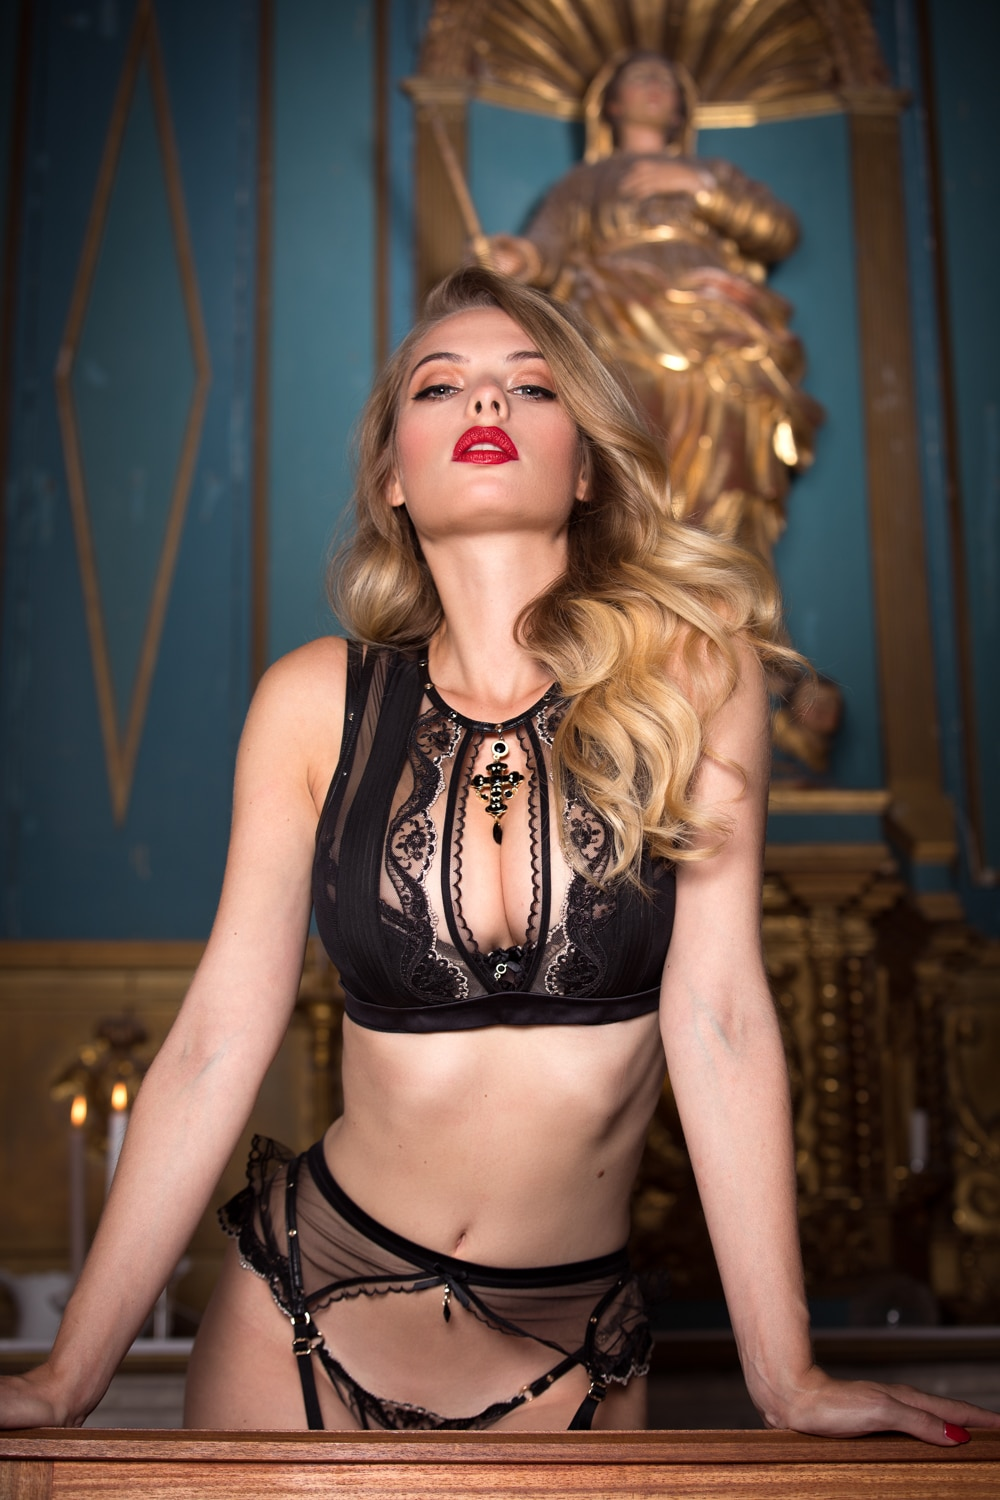 Honey-Birdette-Indecent-Manor-Campaign-9.jpg